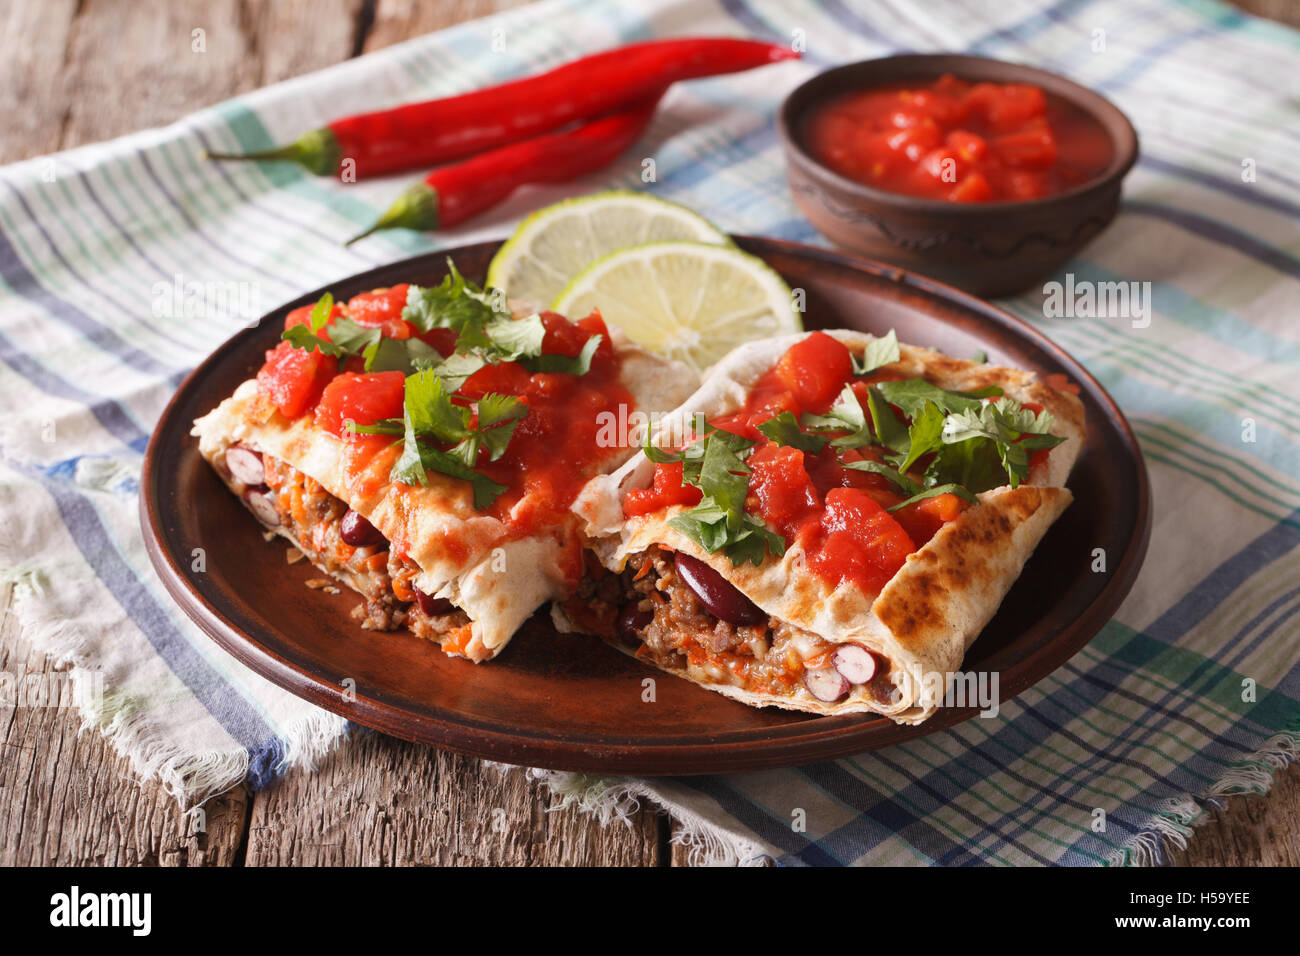 chimichanga with ground meat, beans and cheese close-up on the table. horizontal - Stock Image